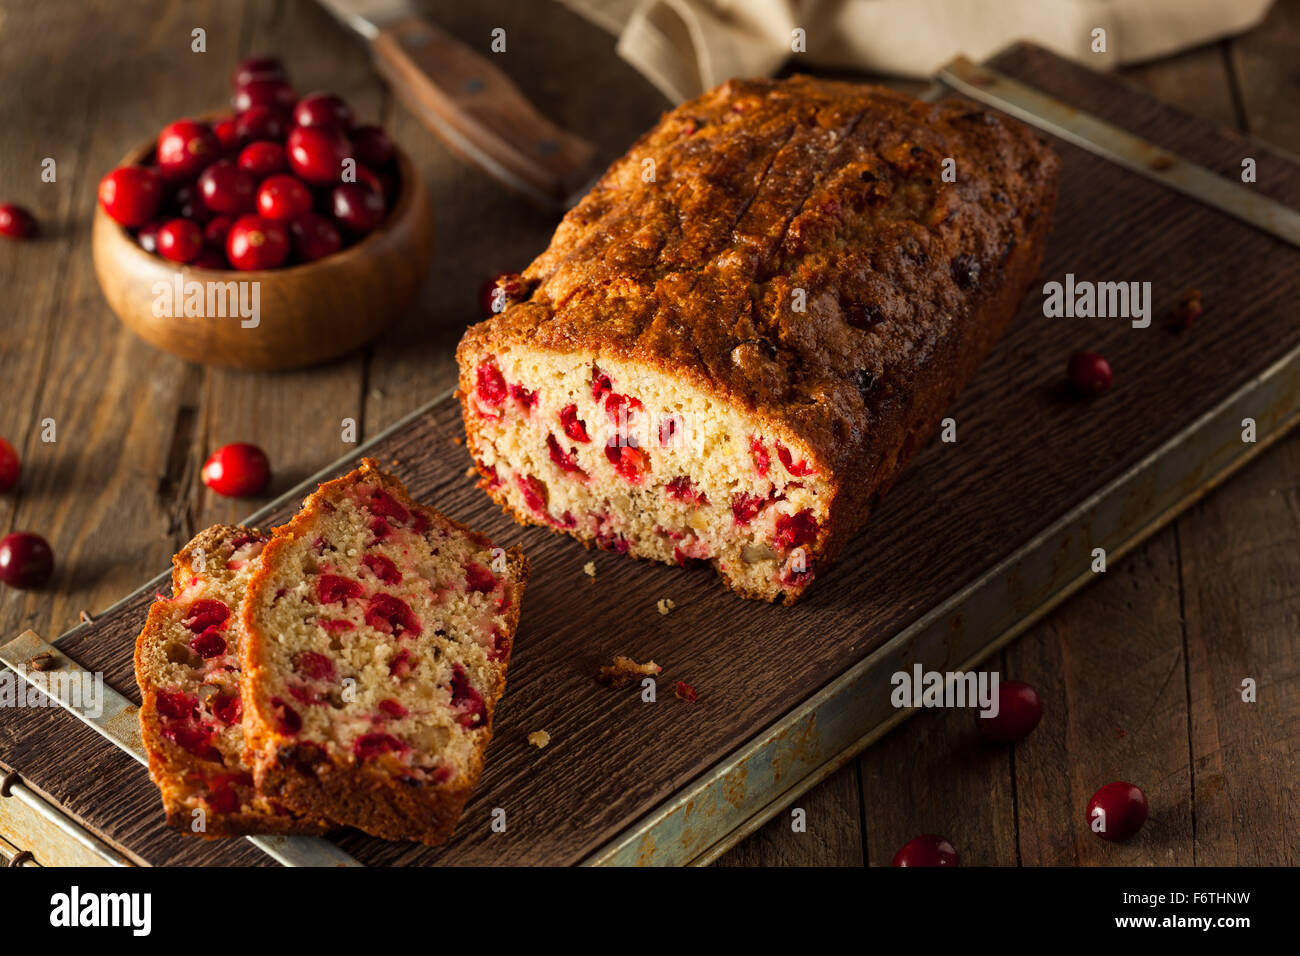 Hot Homemade Cranberry Bread Cut into Slices - Stock Image